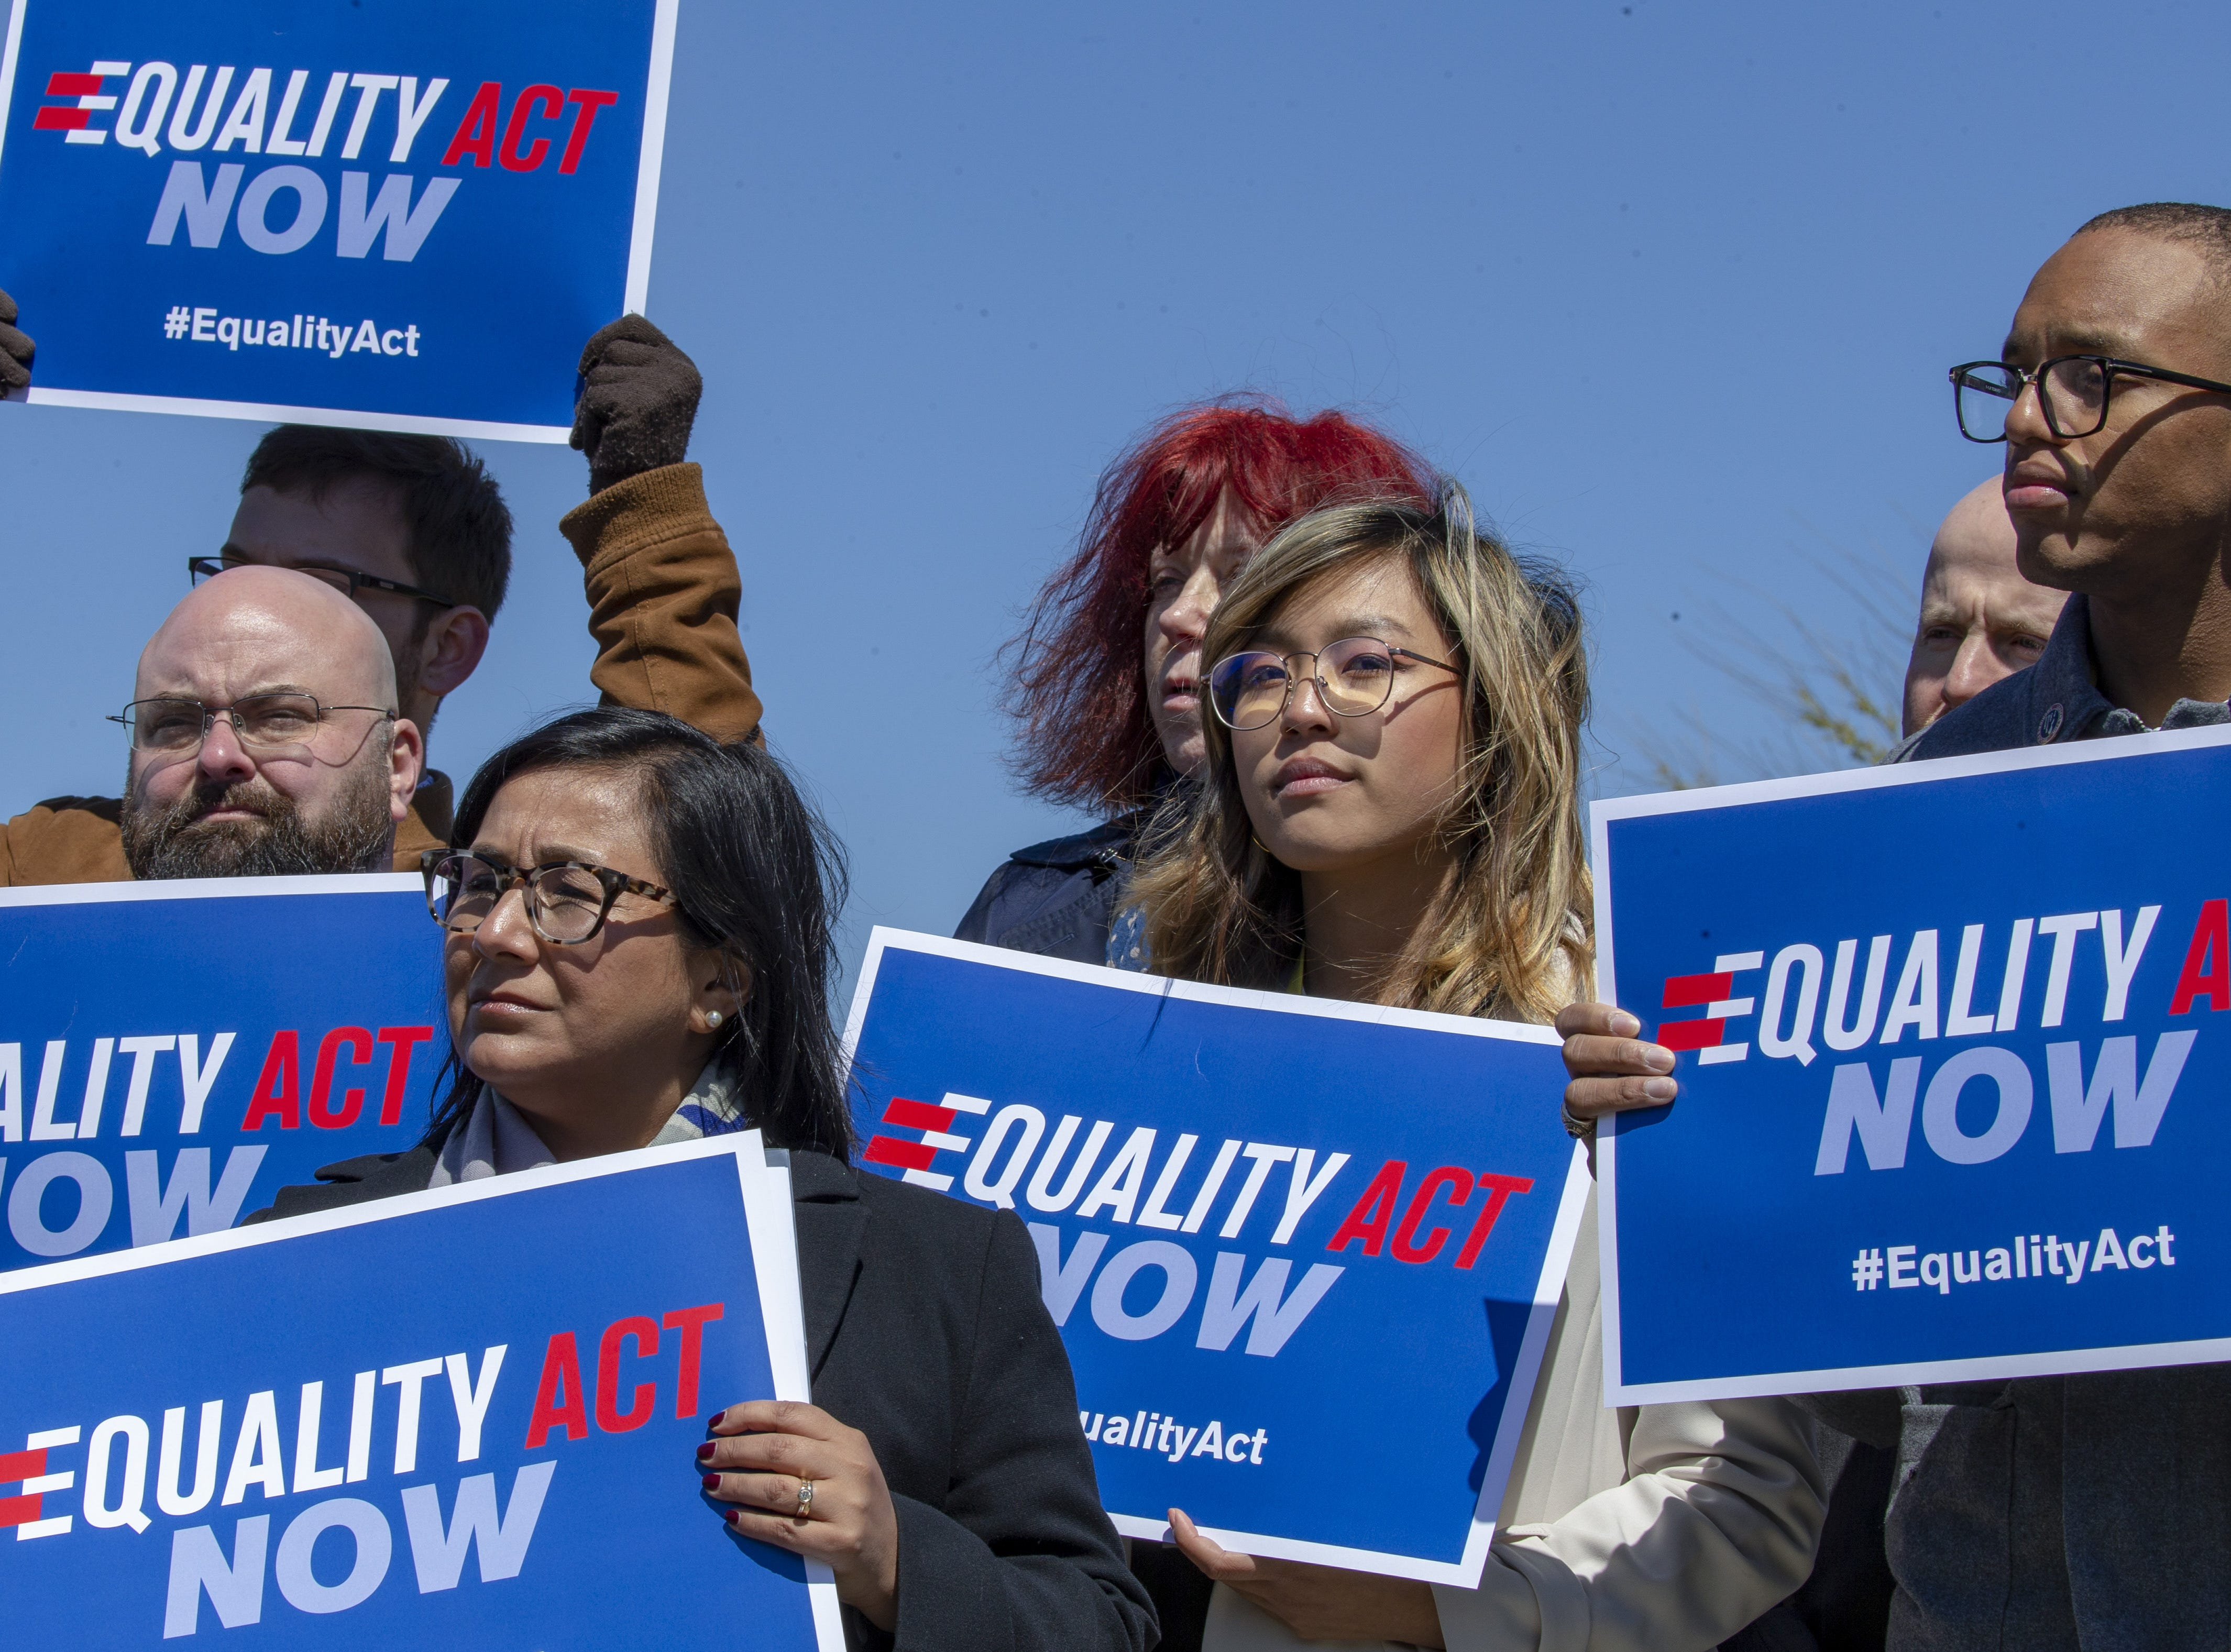 Gay conservative: Equality Act would crush religious freedom. Trump is right to oppose it.